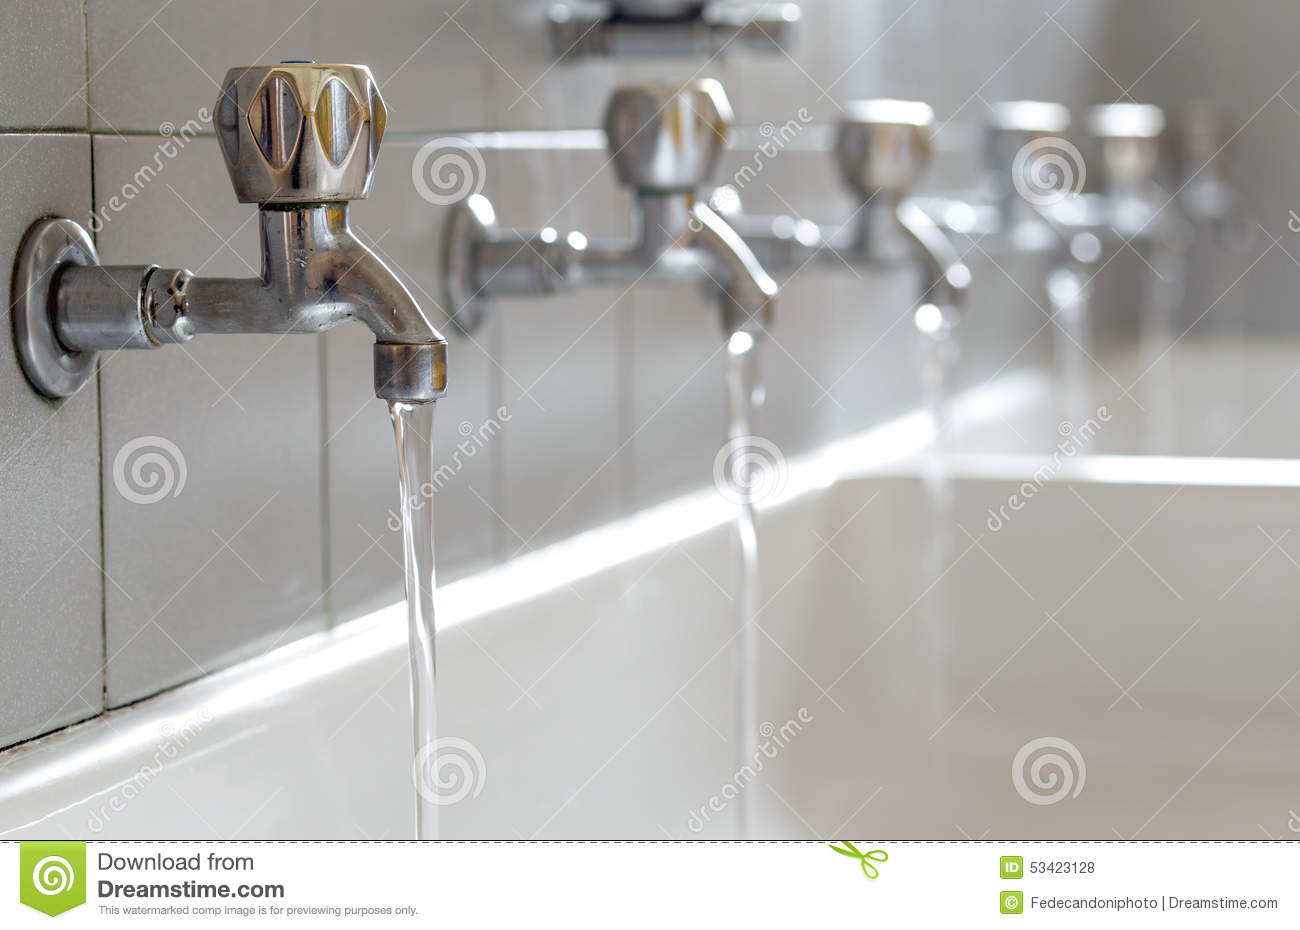 drinking water from bathroom tap your